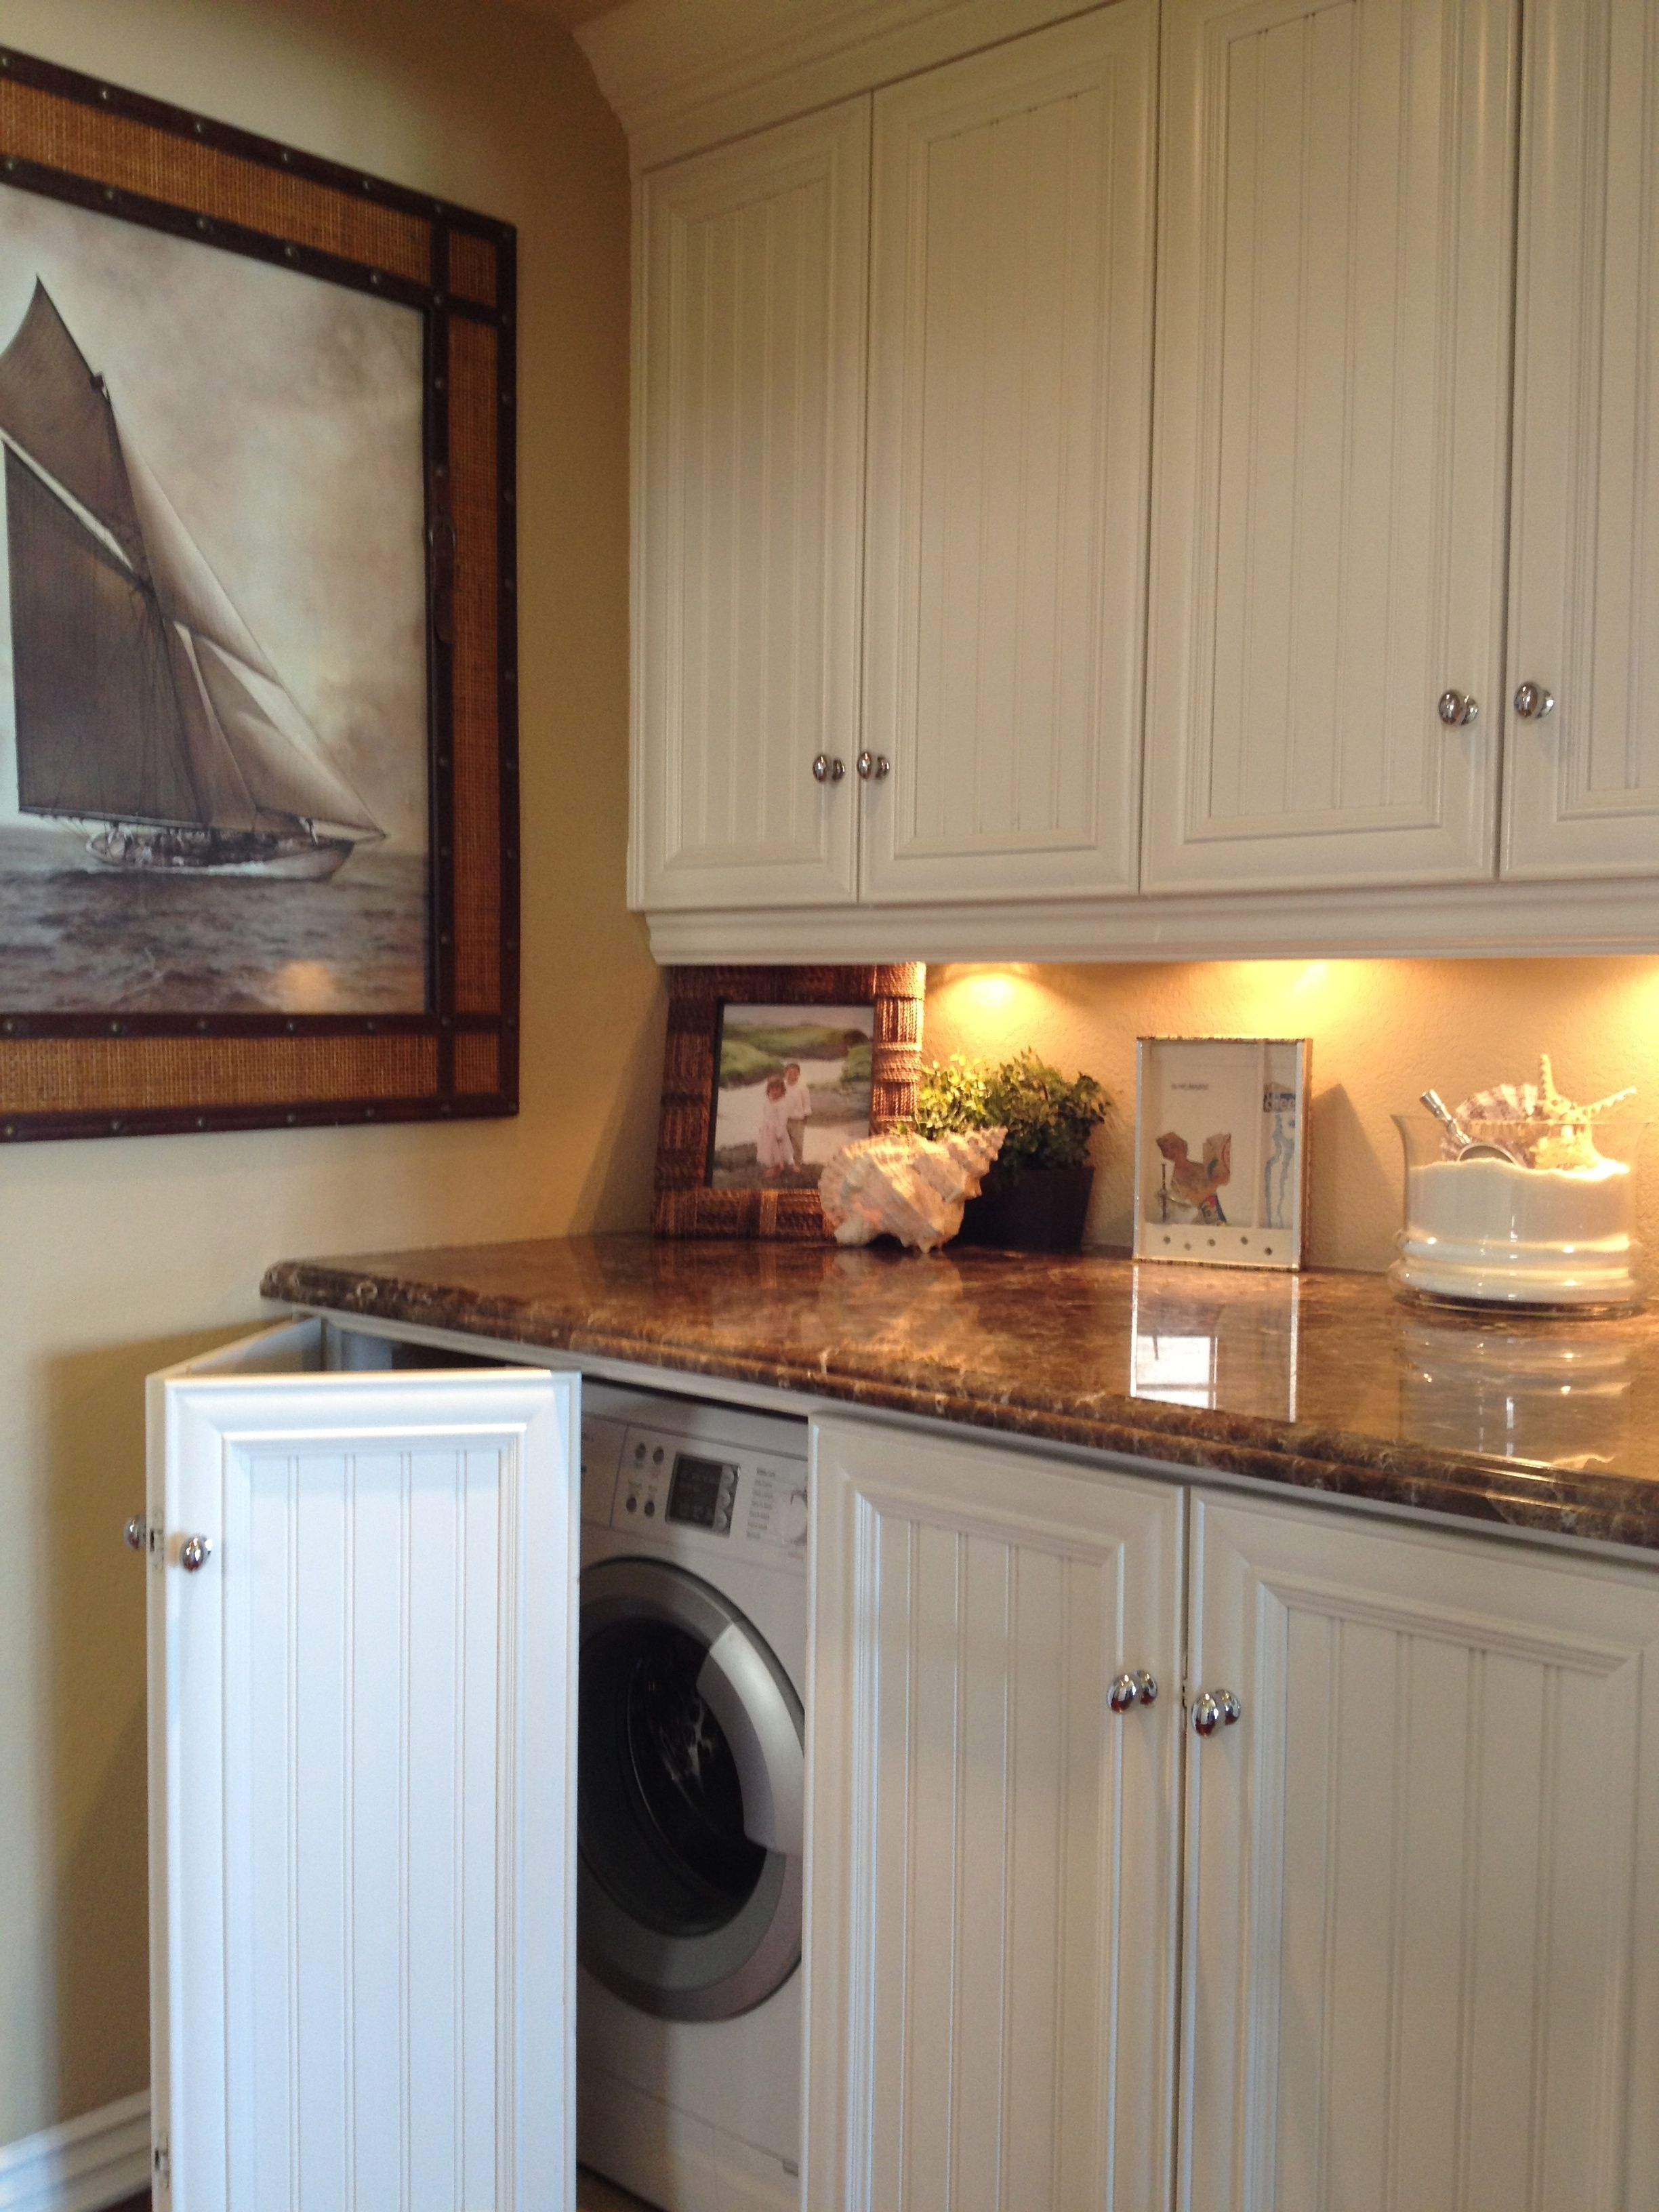 Laundry Room In Kitchen Utilize Kitchen Cabinet Space 10 Ways To Organize The Laundry